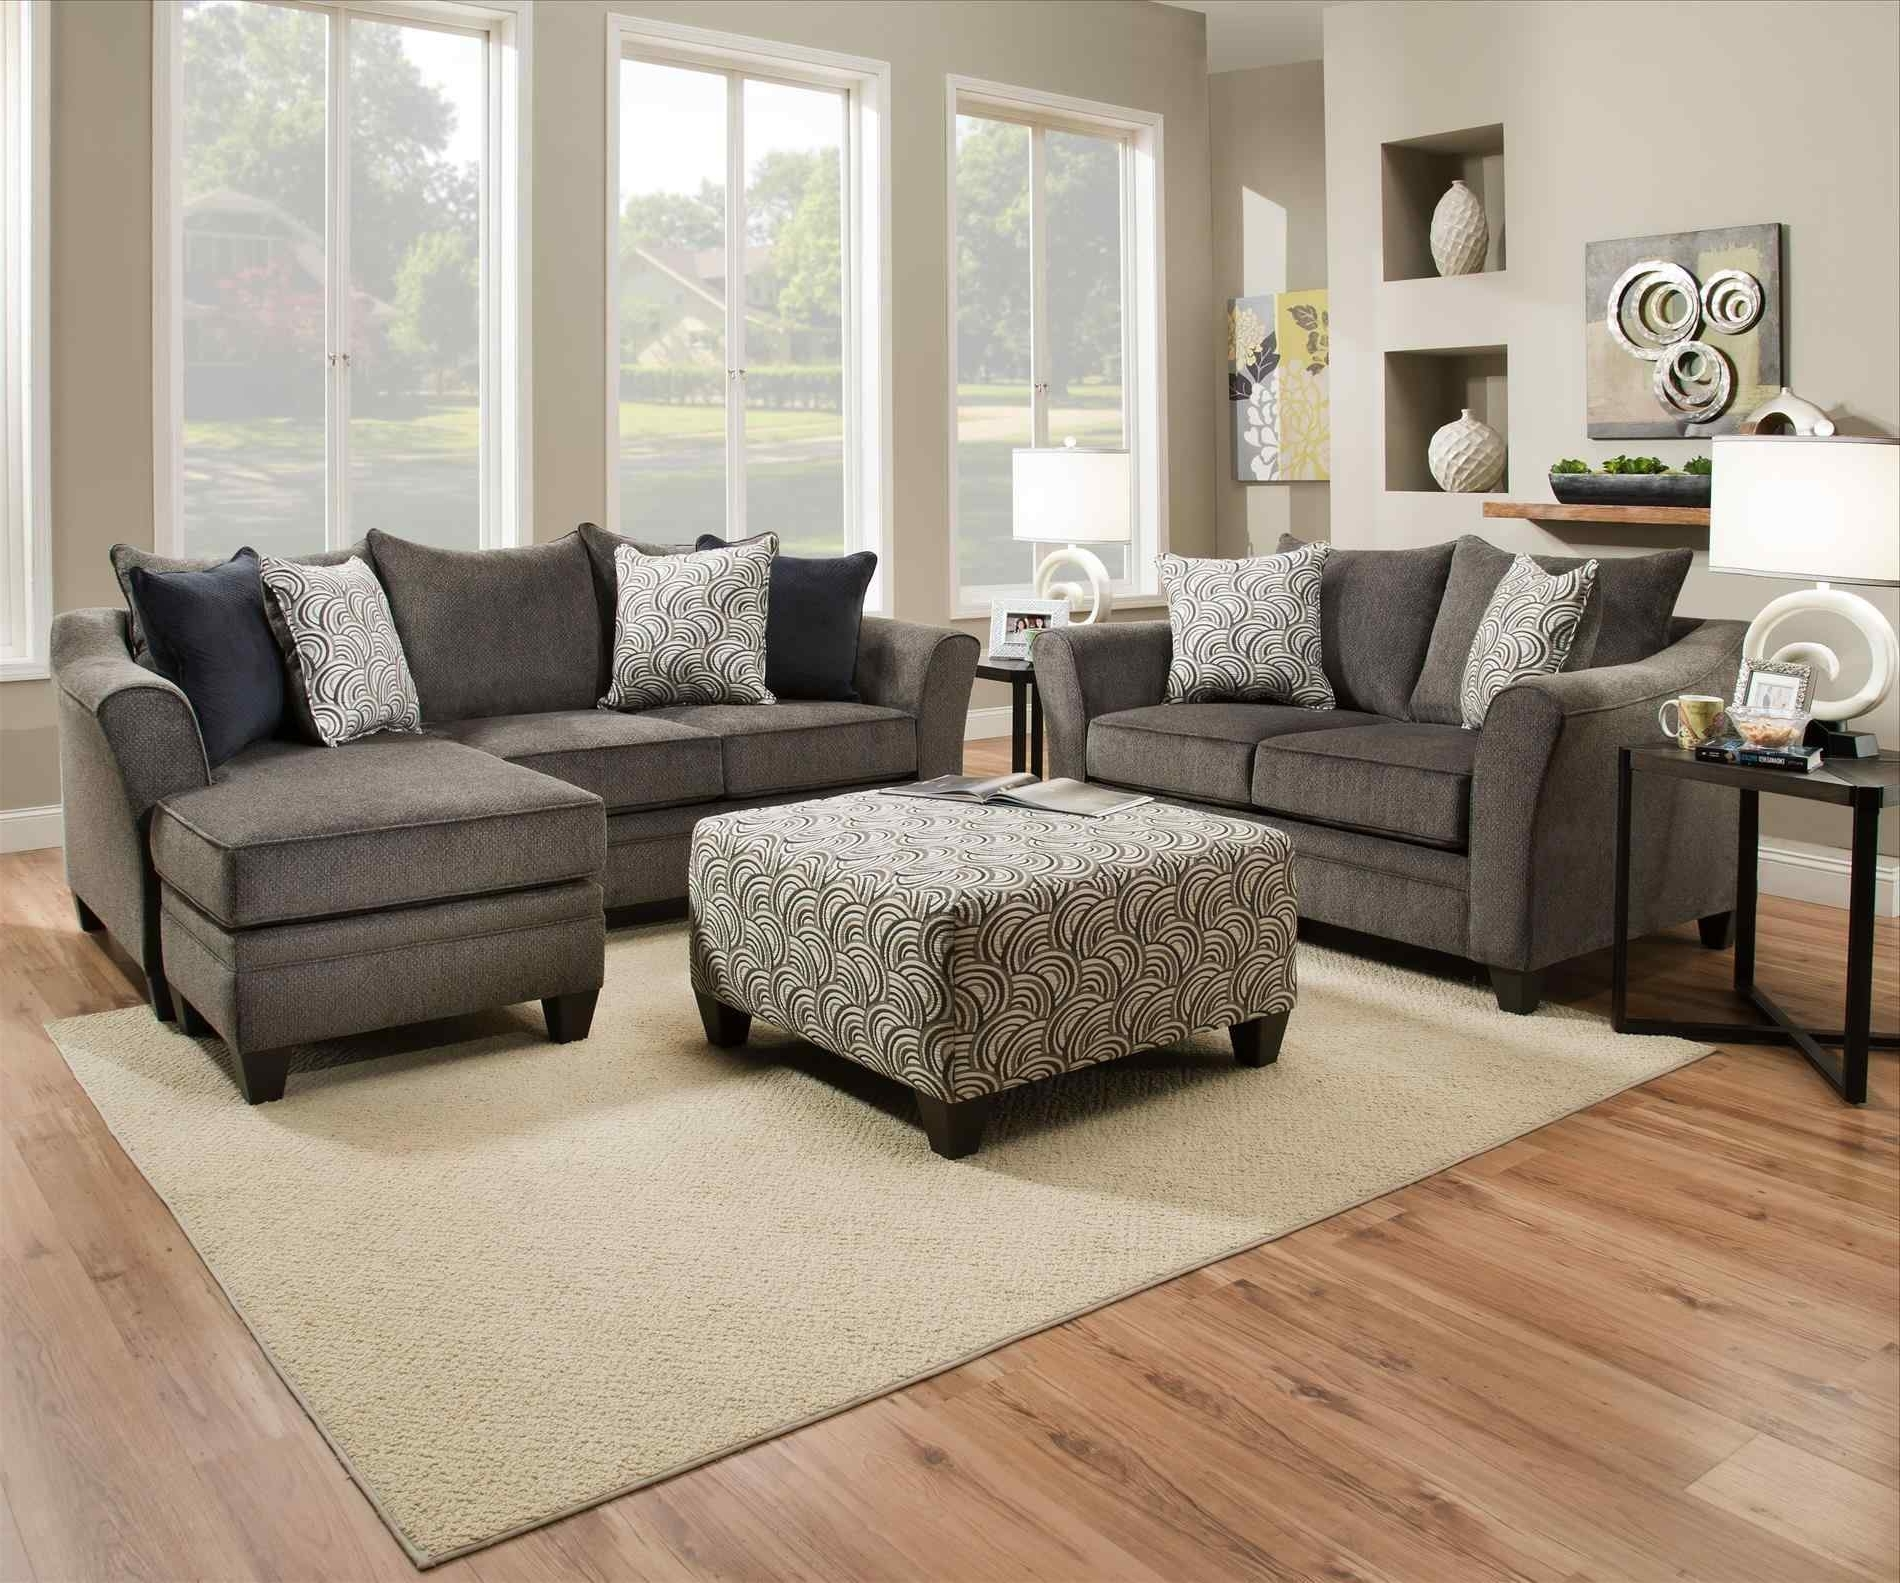 Sofas : Deep Sofa Sectional Sofas Online Apartment Sofa Overstock Regarding Widely Used Overstock Sectional Sofas (View 17 of 20)